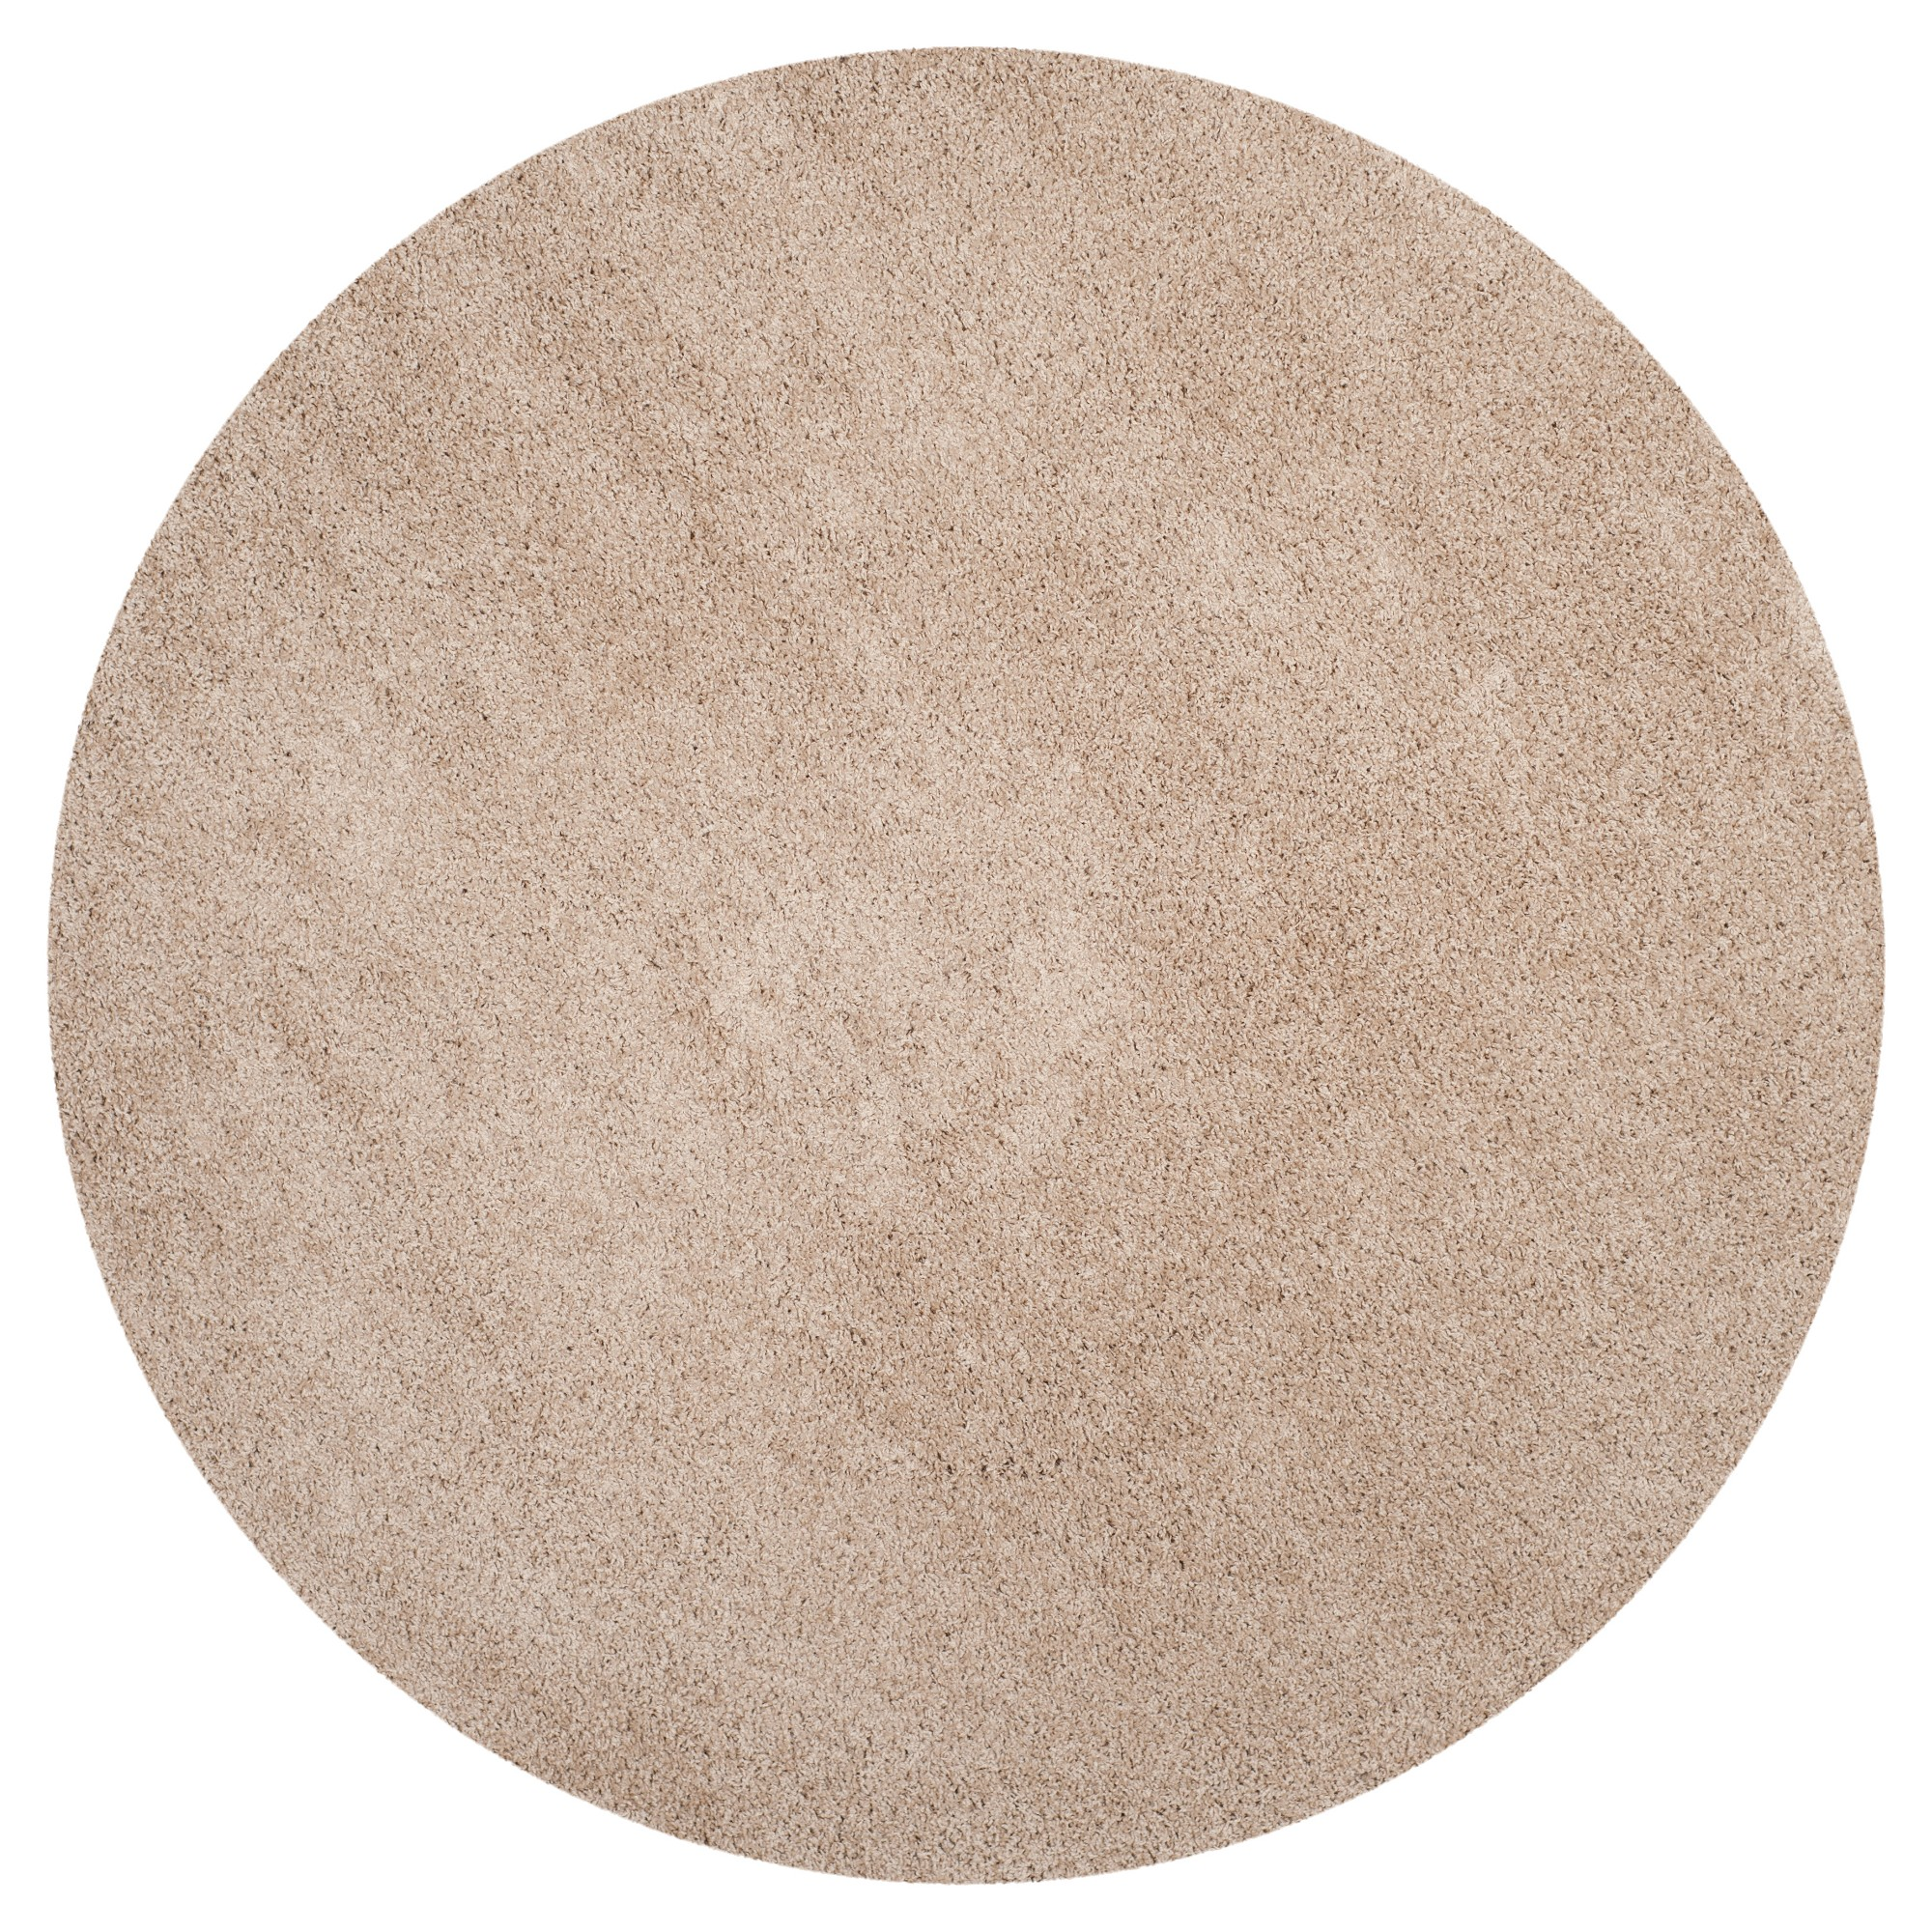 Sand Solid Loomed Round Area Rug 6 7 Round Safavieh Brown